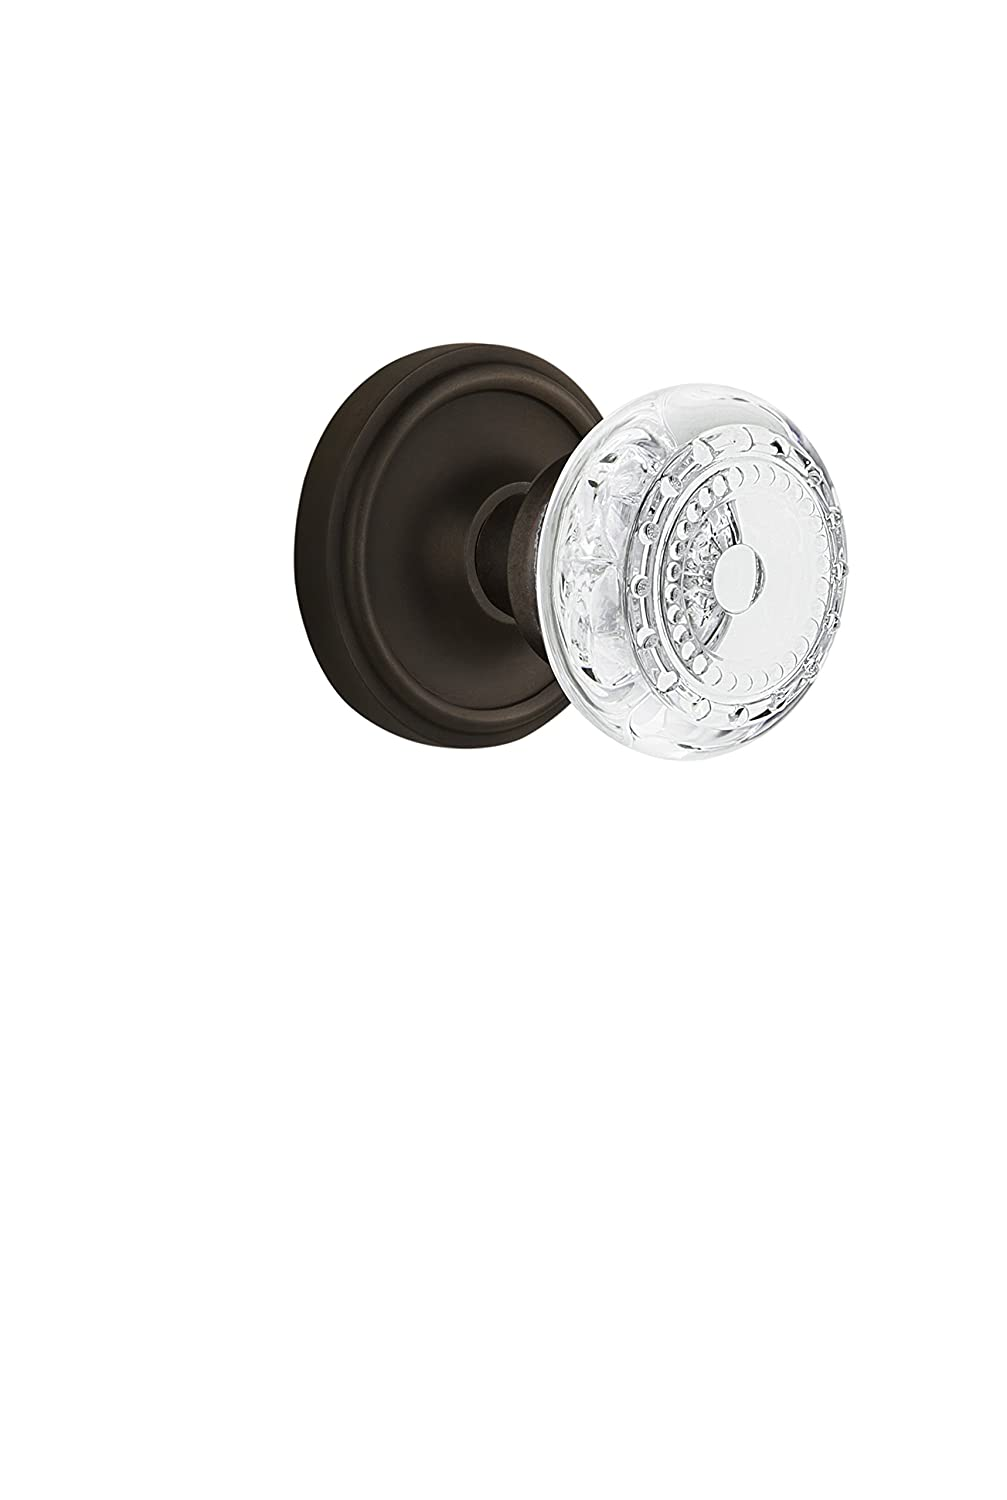 Nostalgic Warehouse 752199 Classic Rosette with Crystal Meadows Knob Privacy Backset Size 2.375 Oil-Rubbed Bronze